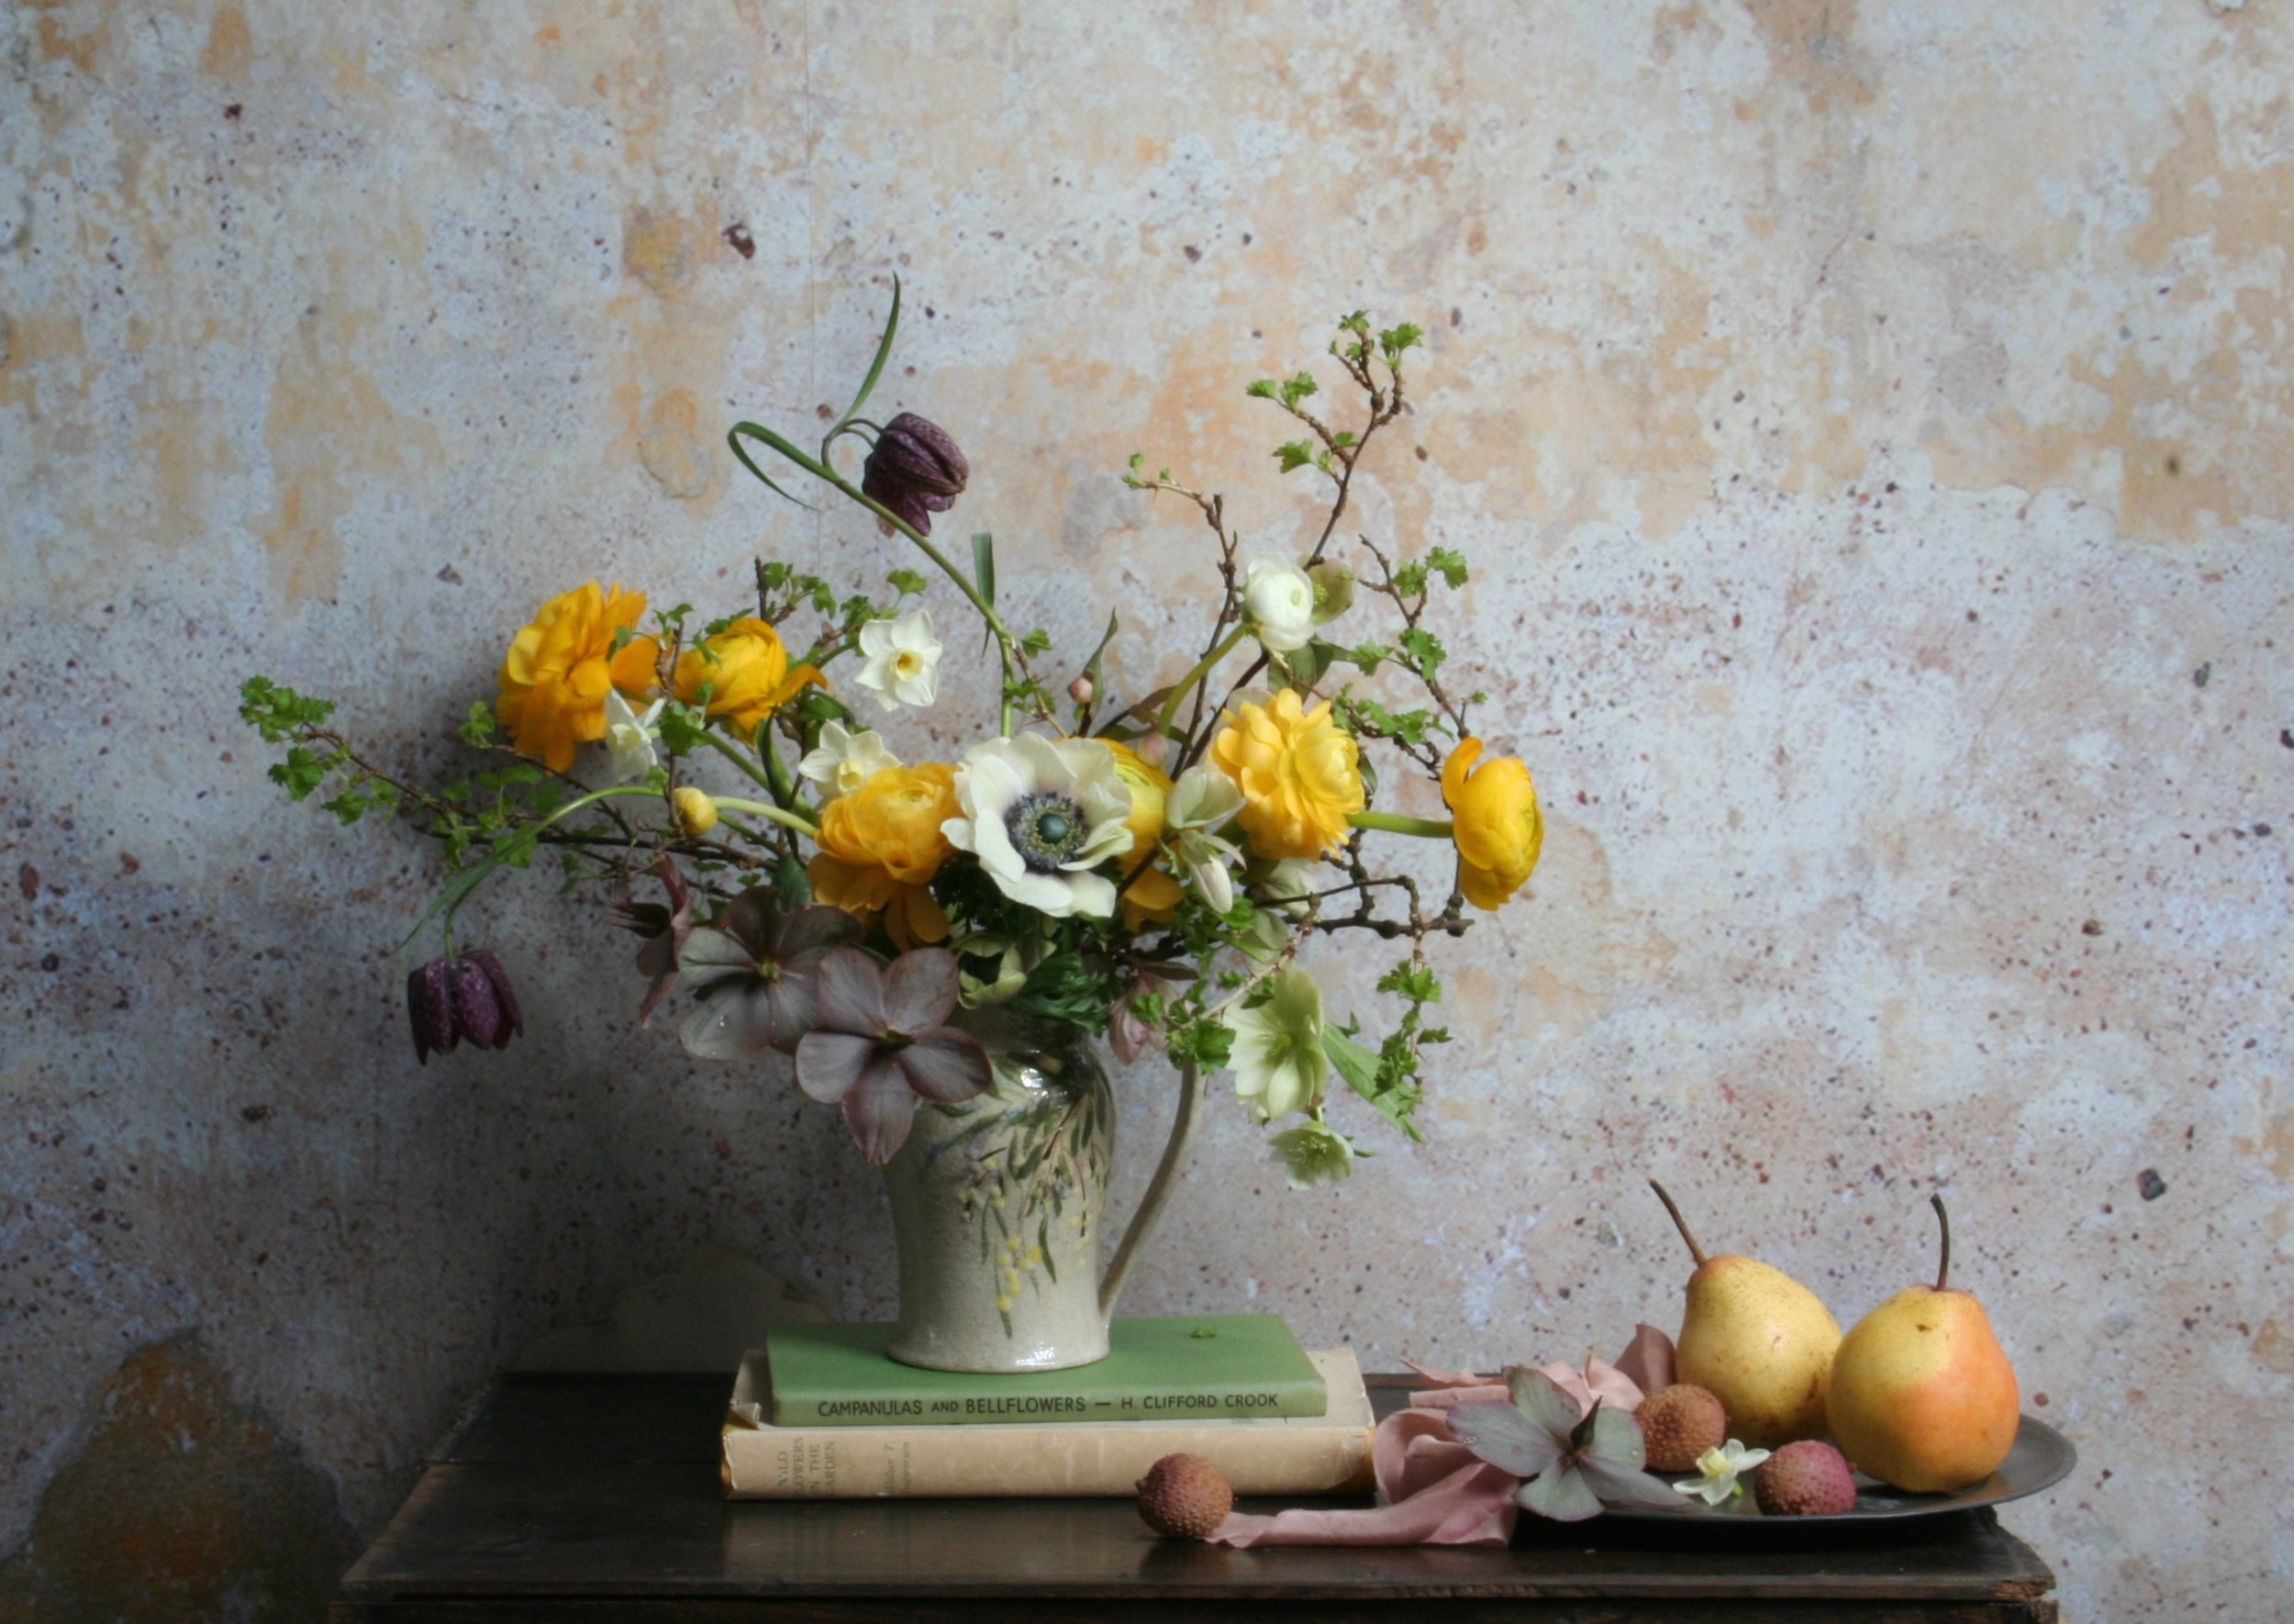 Spring palette of late Hellebores, Ranunculus, Narcissus and Anemones.